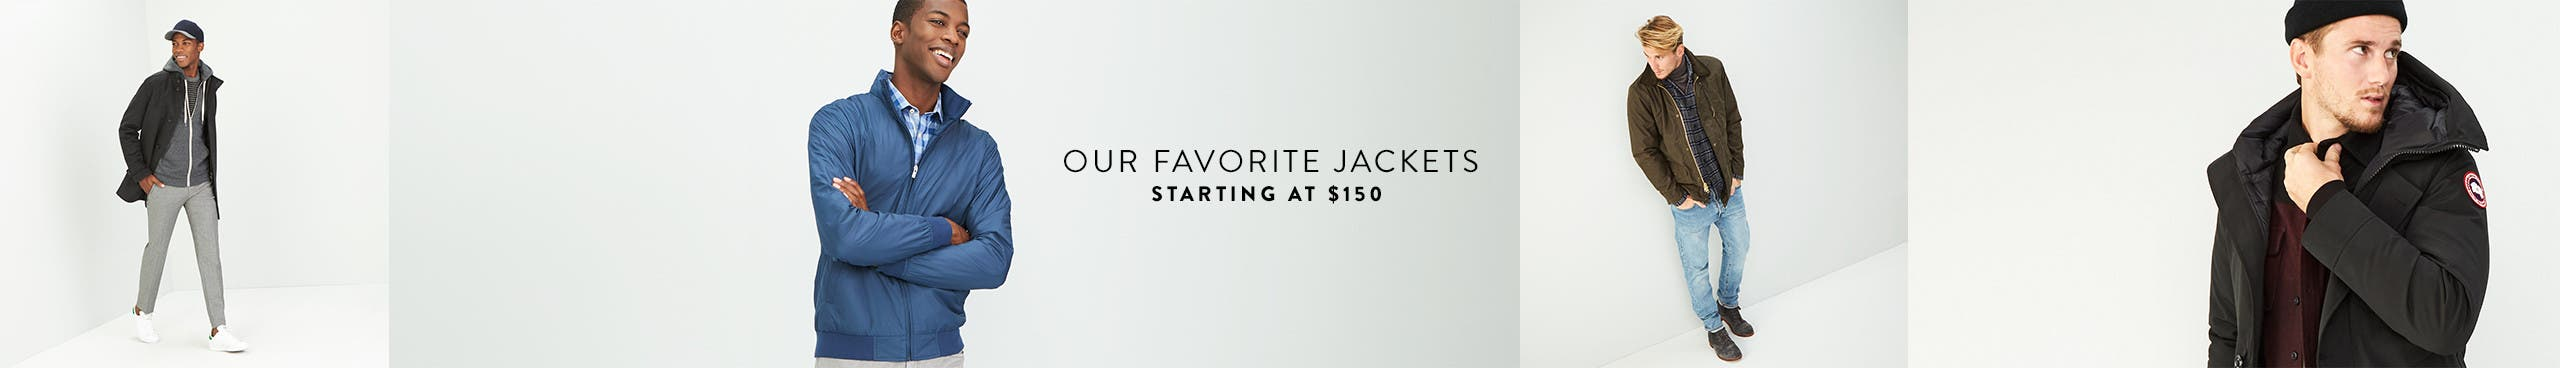 Our favorite jackets starting at $150.